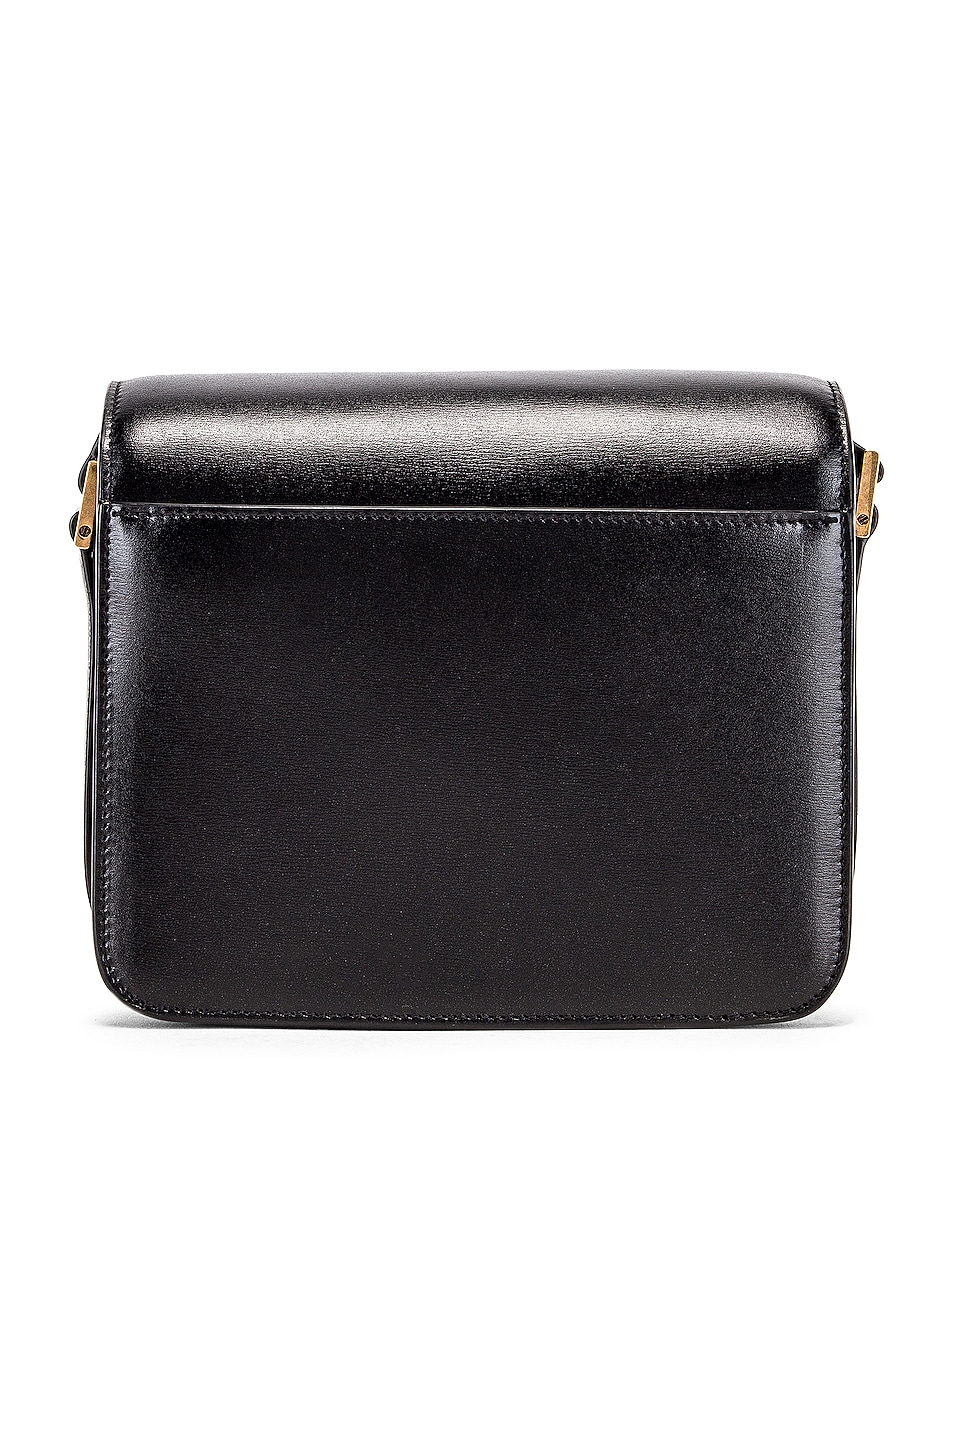 Image 3 of Saint Laurent Small Le Besace Bag in Black